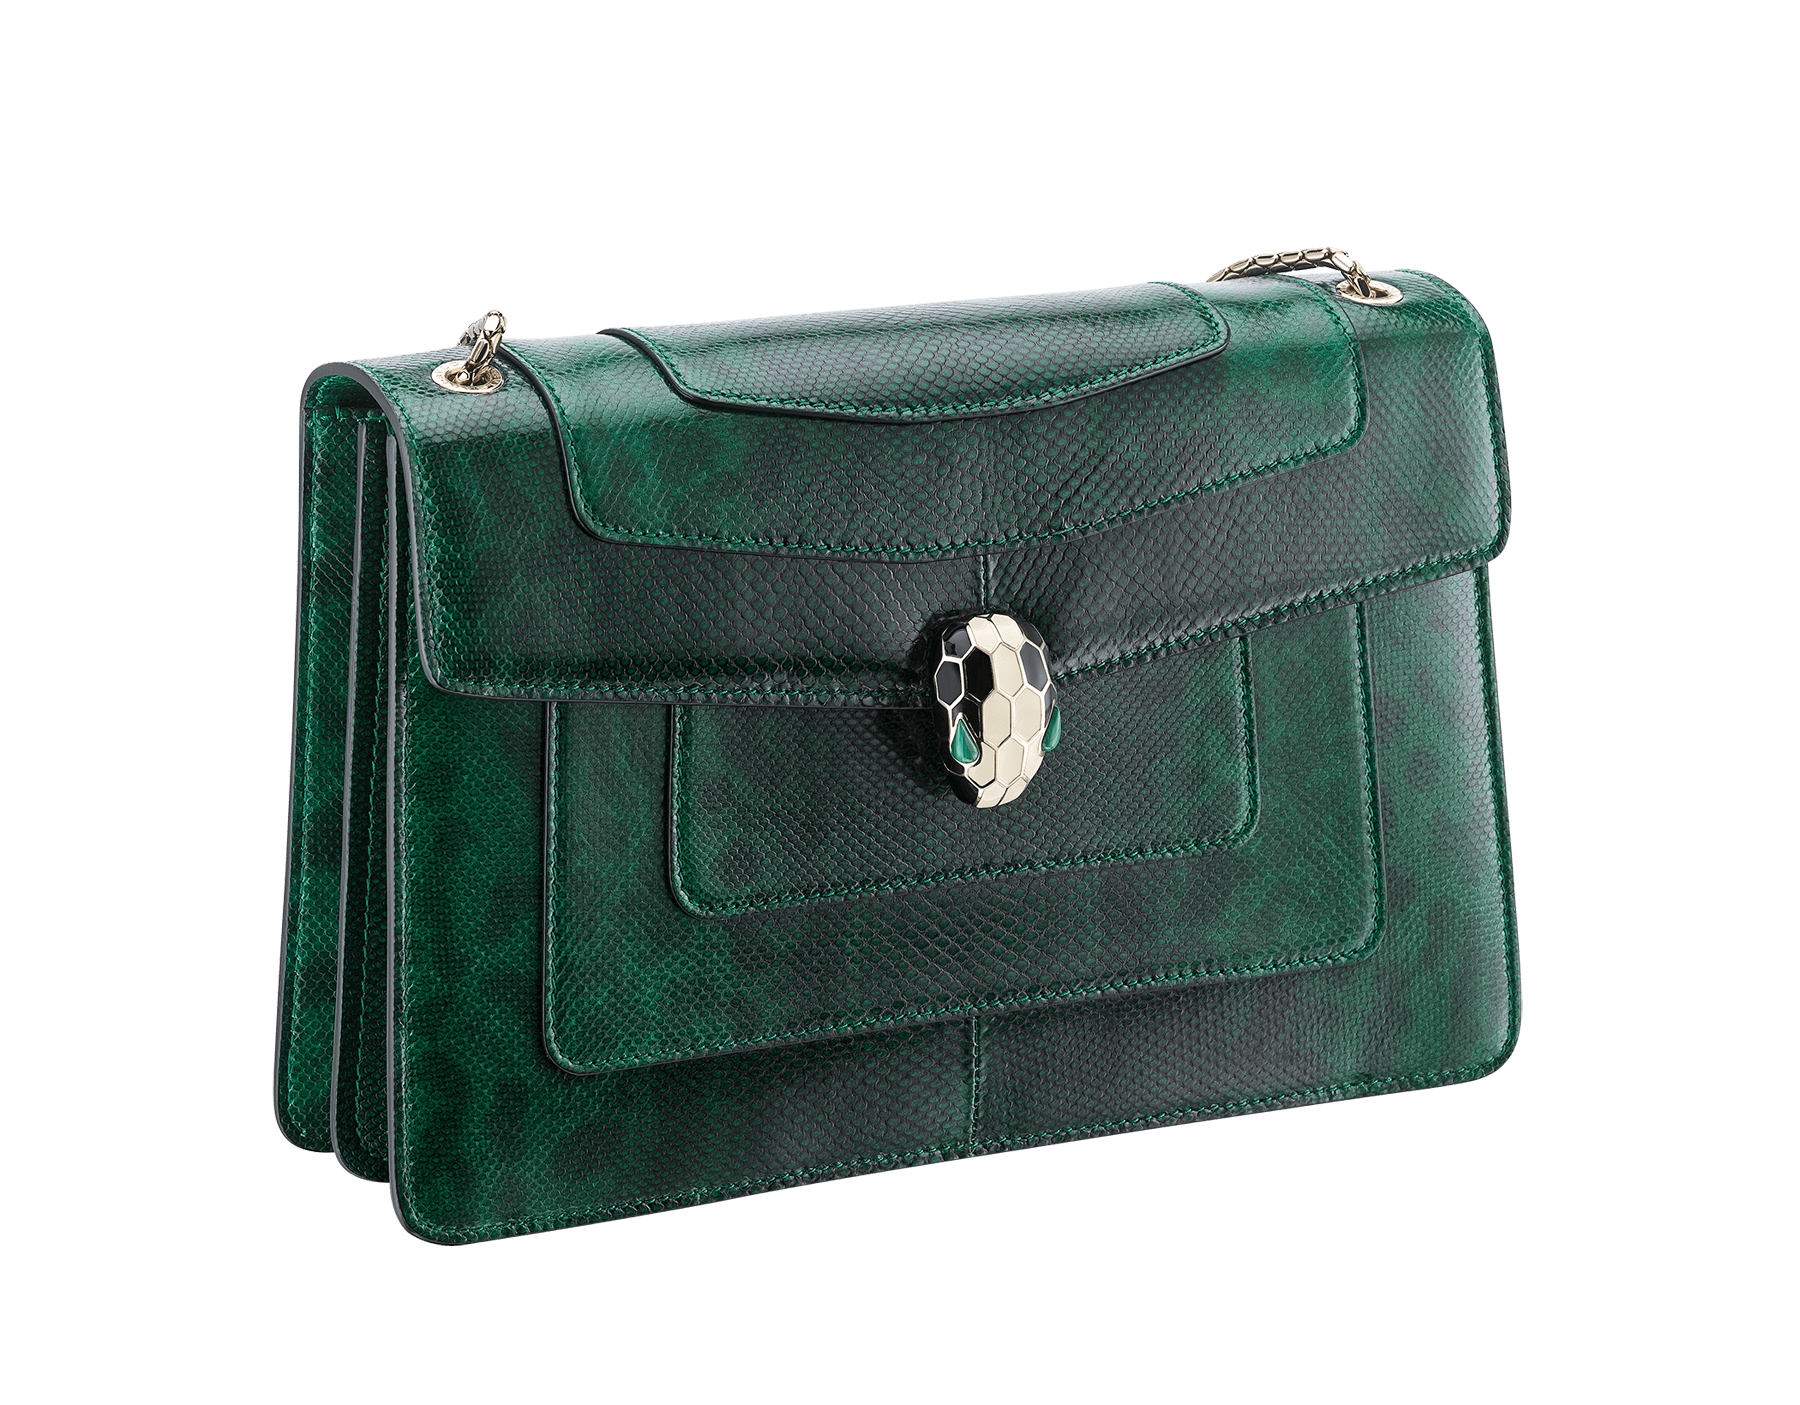 Flap cover bag Serpenti Forever in roman garnet shiny karung skin. Brass light gold plated tempting snake head closure in shiny black and white enamel, with eyes in green malachite. 521-SK image 2